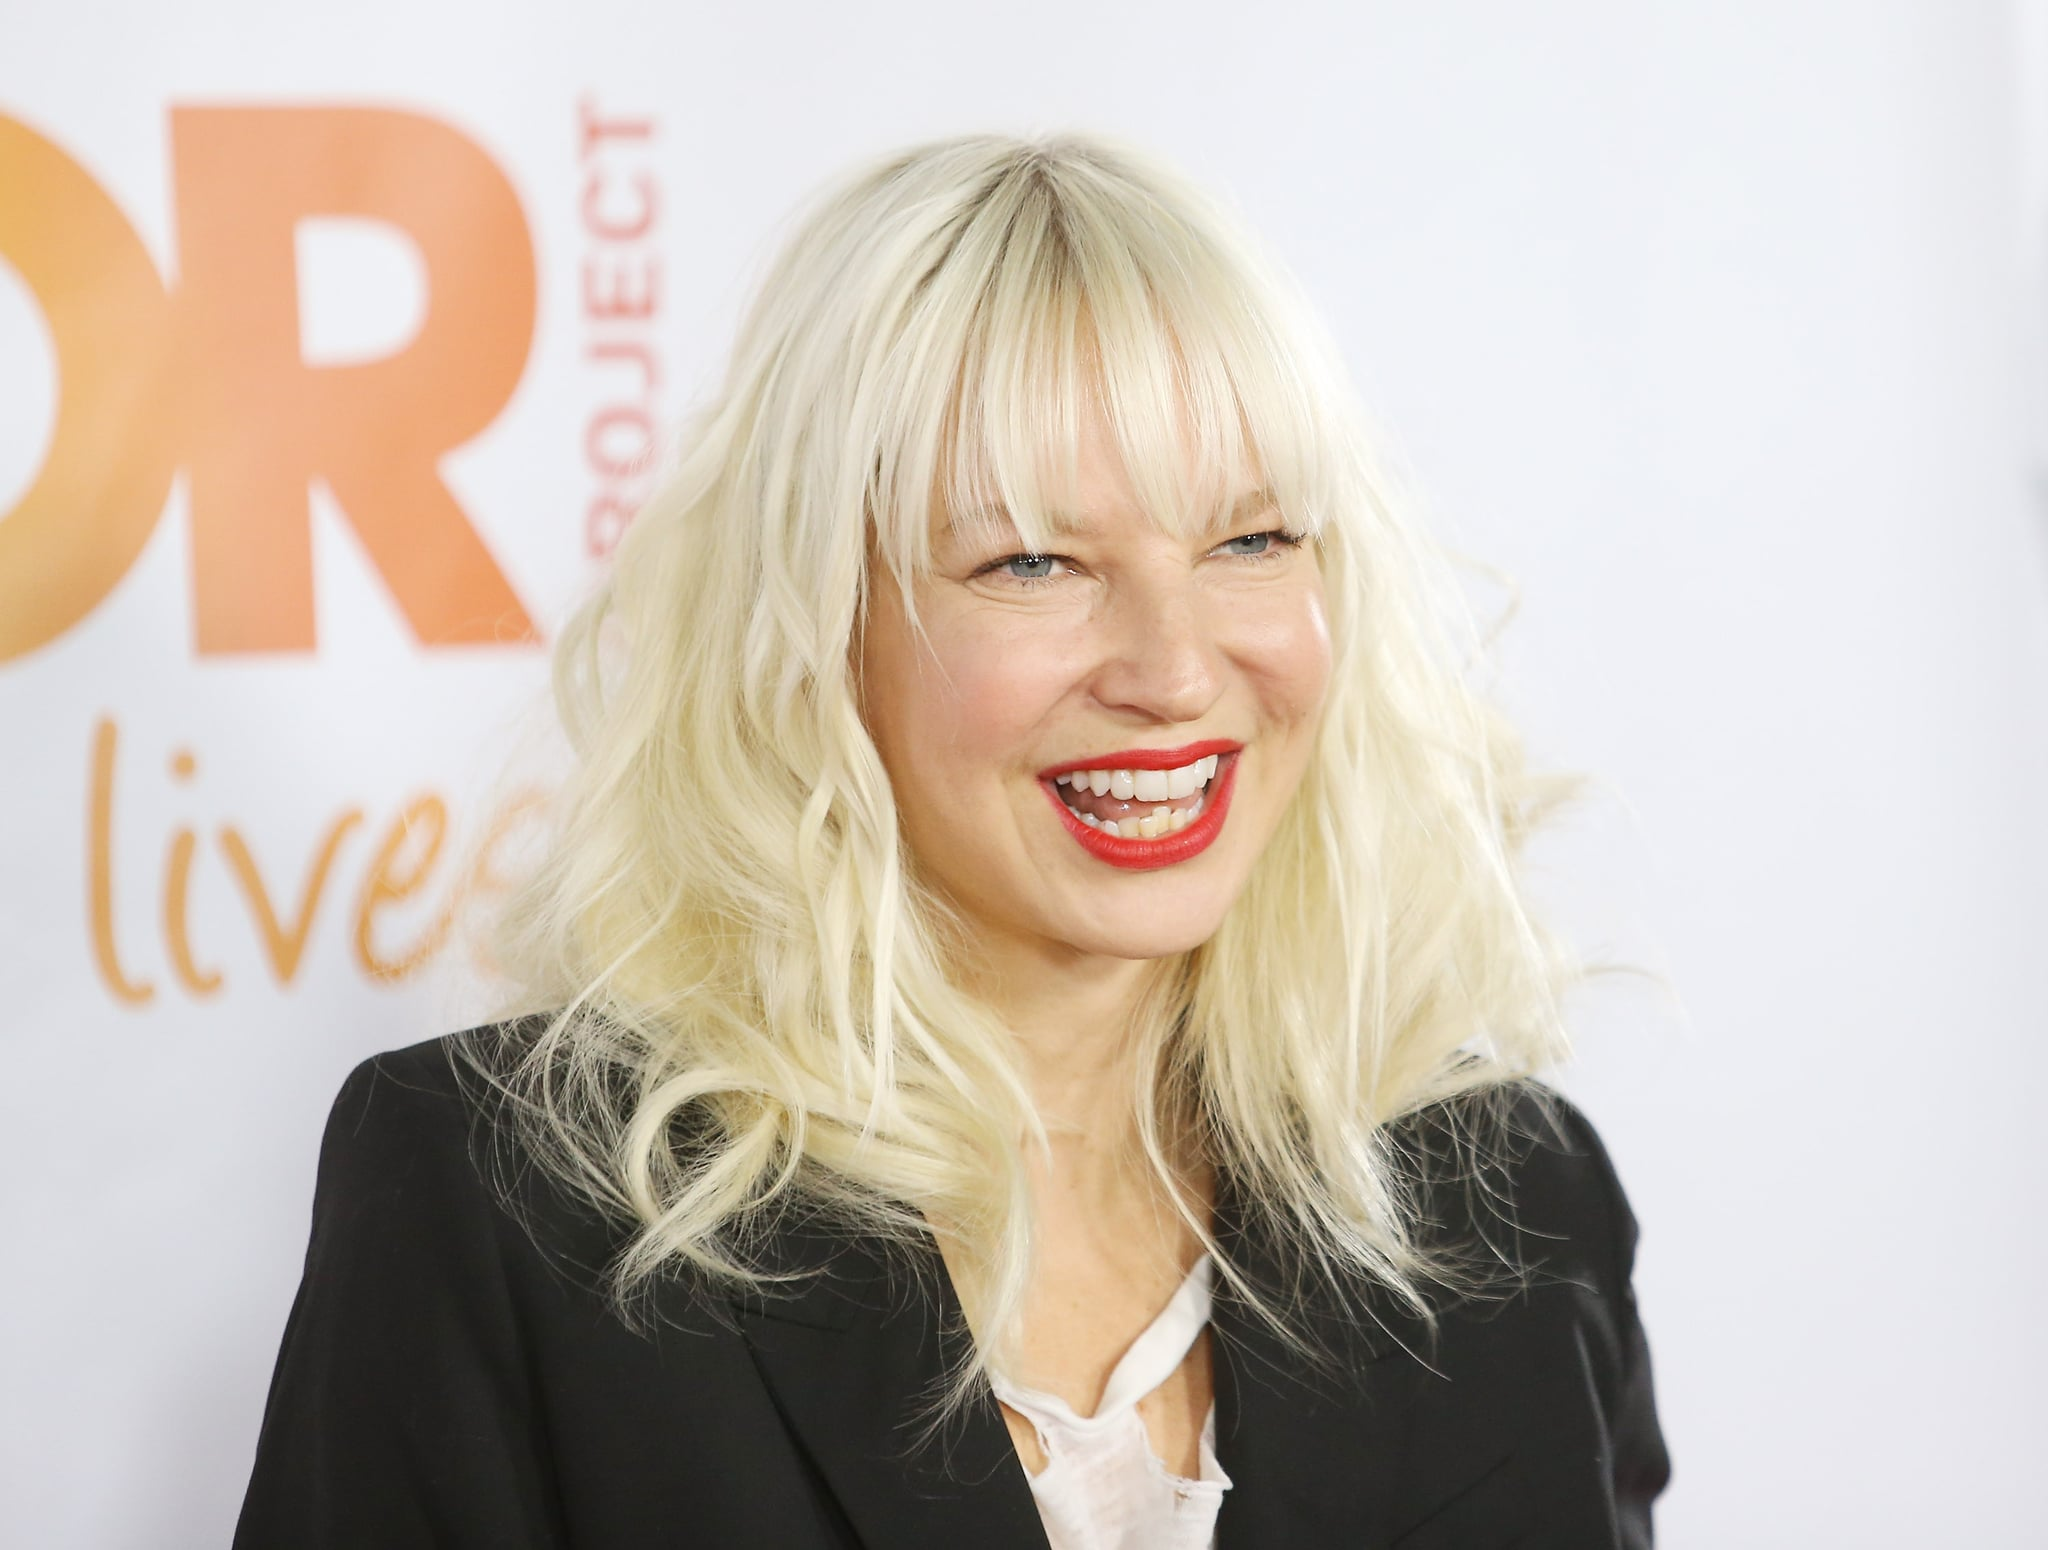 HOLLYWOOD, CA - DECEMBER 08:  Sia Furler arrives at the 15th Annual Trevor Project Benefit held at Hollywood Palladium on December 8, 2013 in Hollywood, California.  (Photo by Michael Tran/FilmMagic)